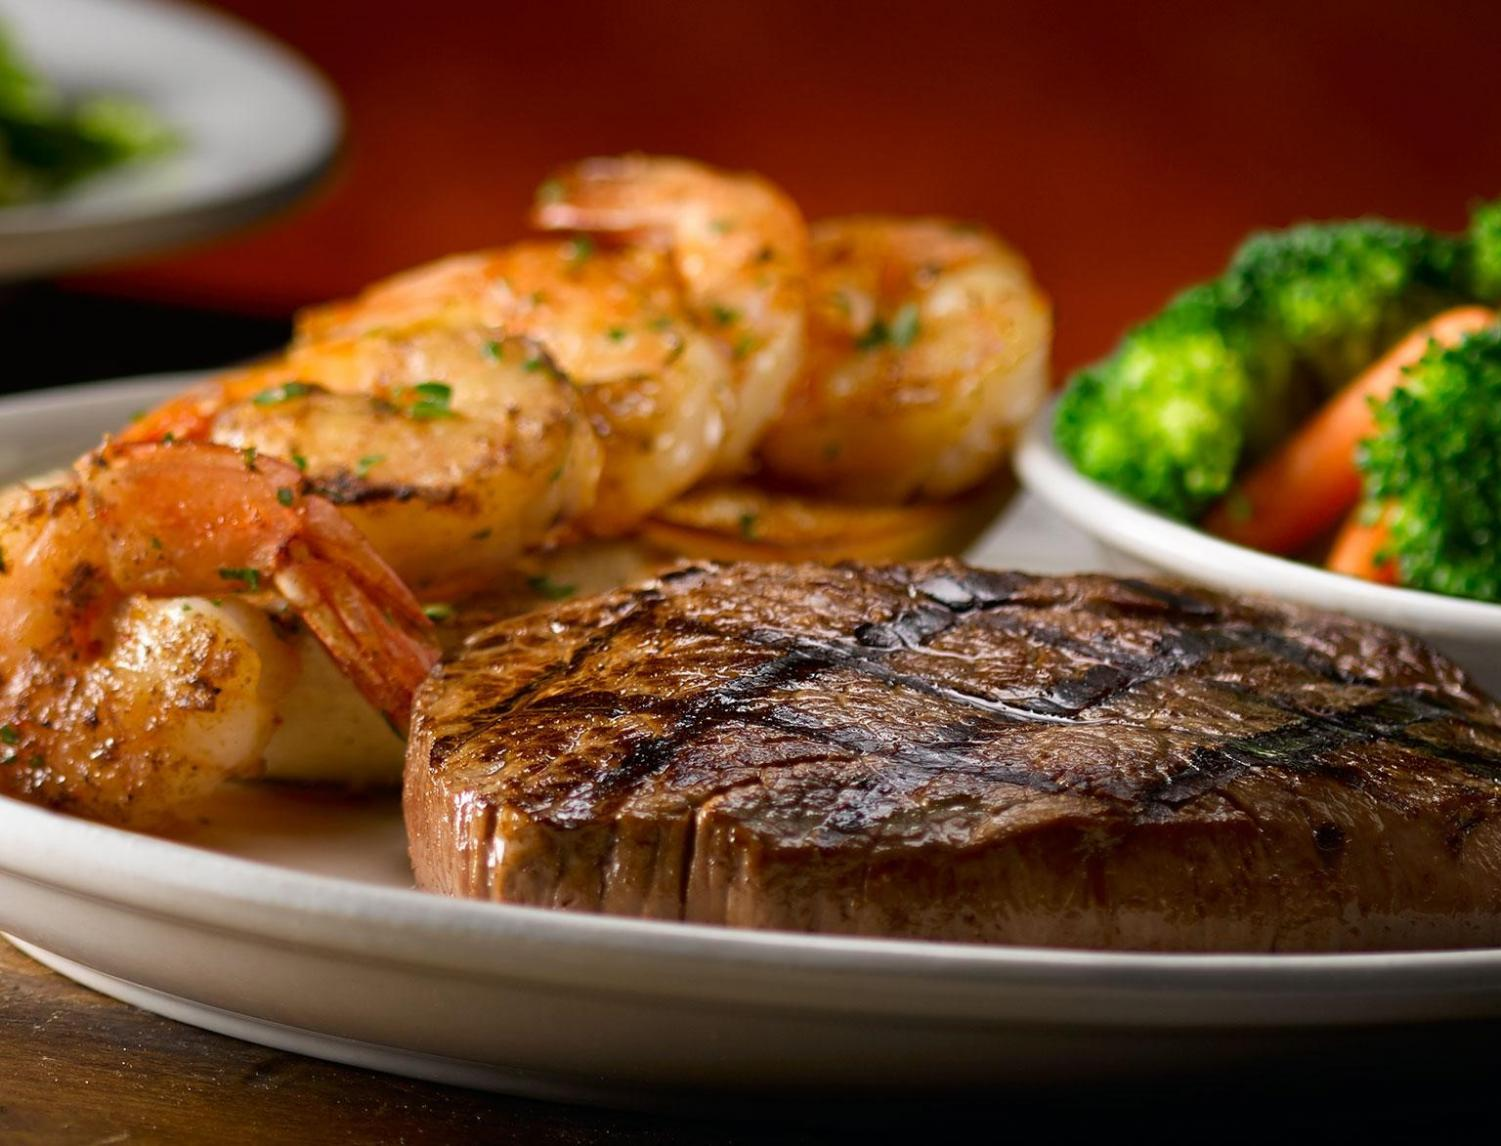 The 8oz Sirloin Steak combo includes a grilled shrimp skewer and your choice of  two sides.